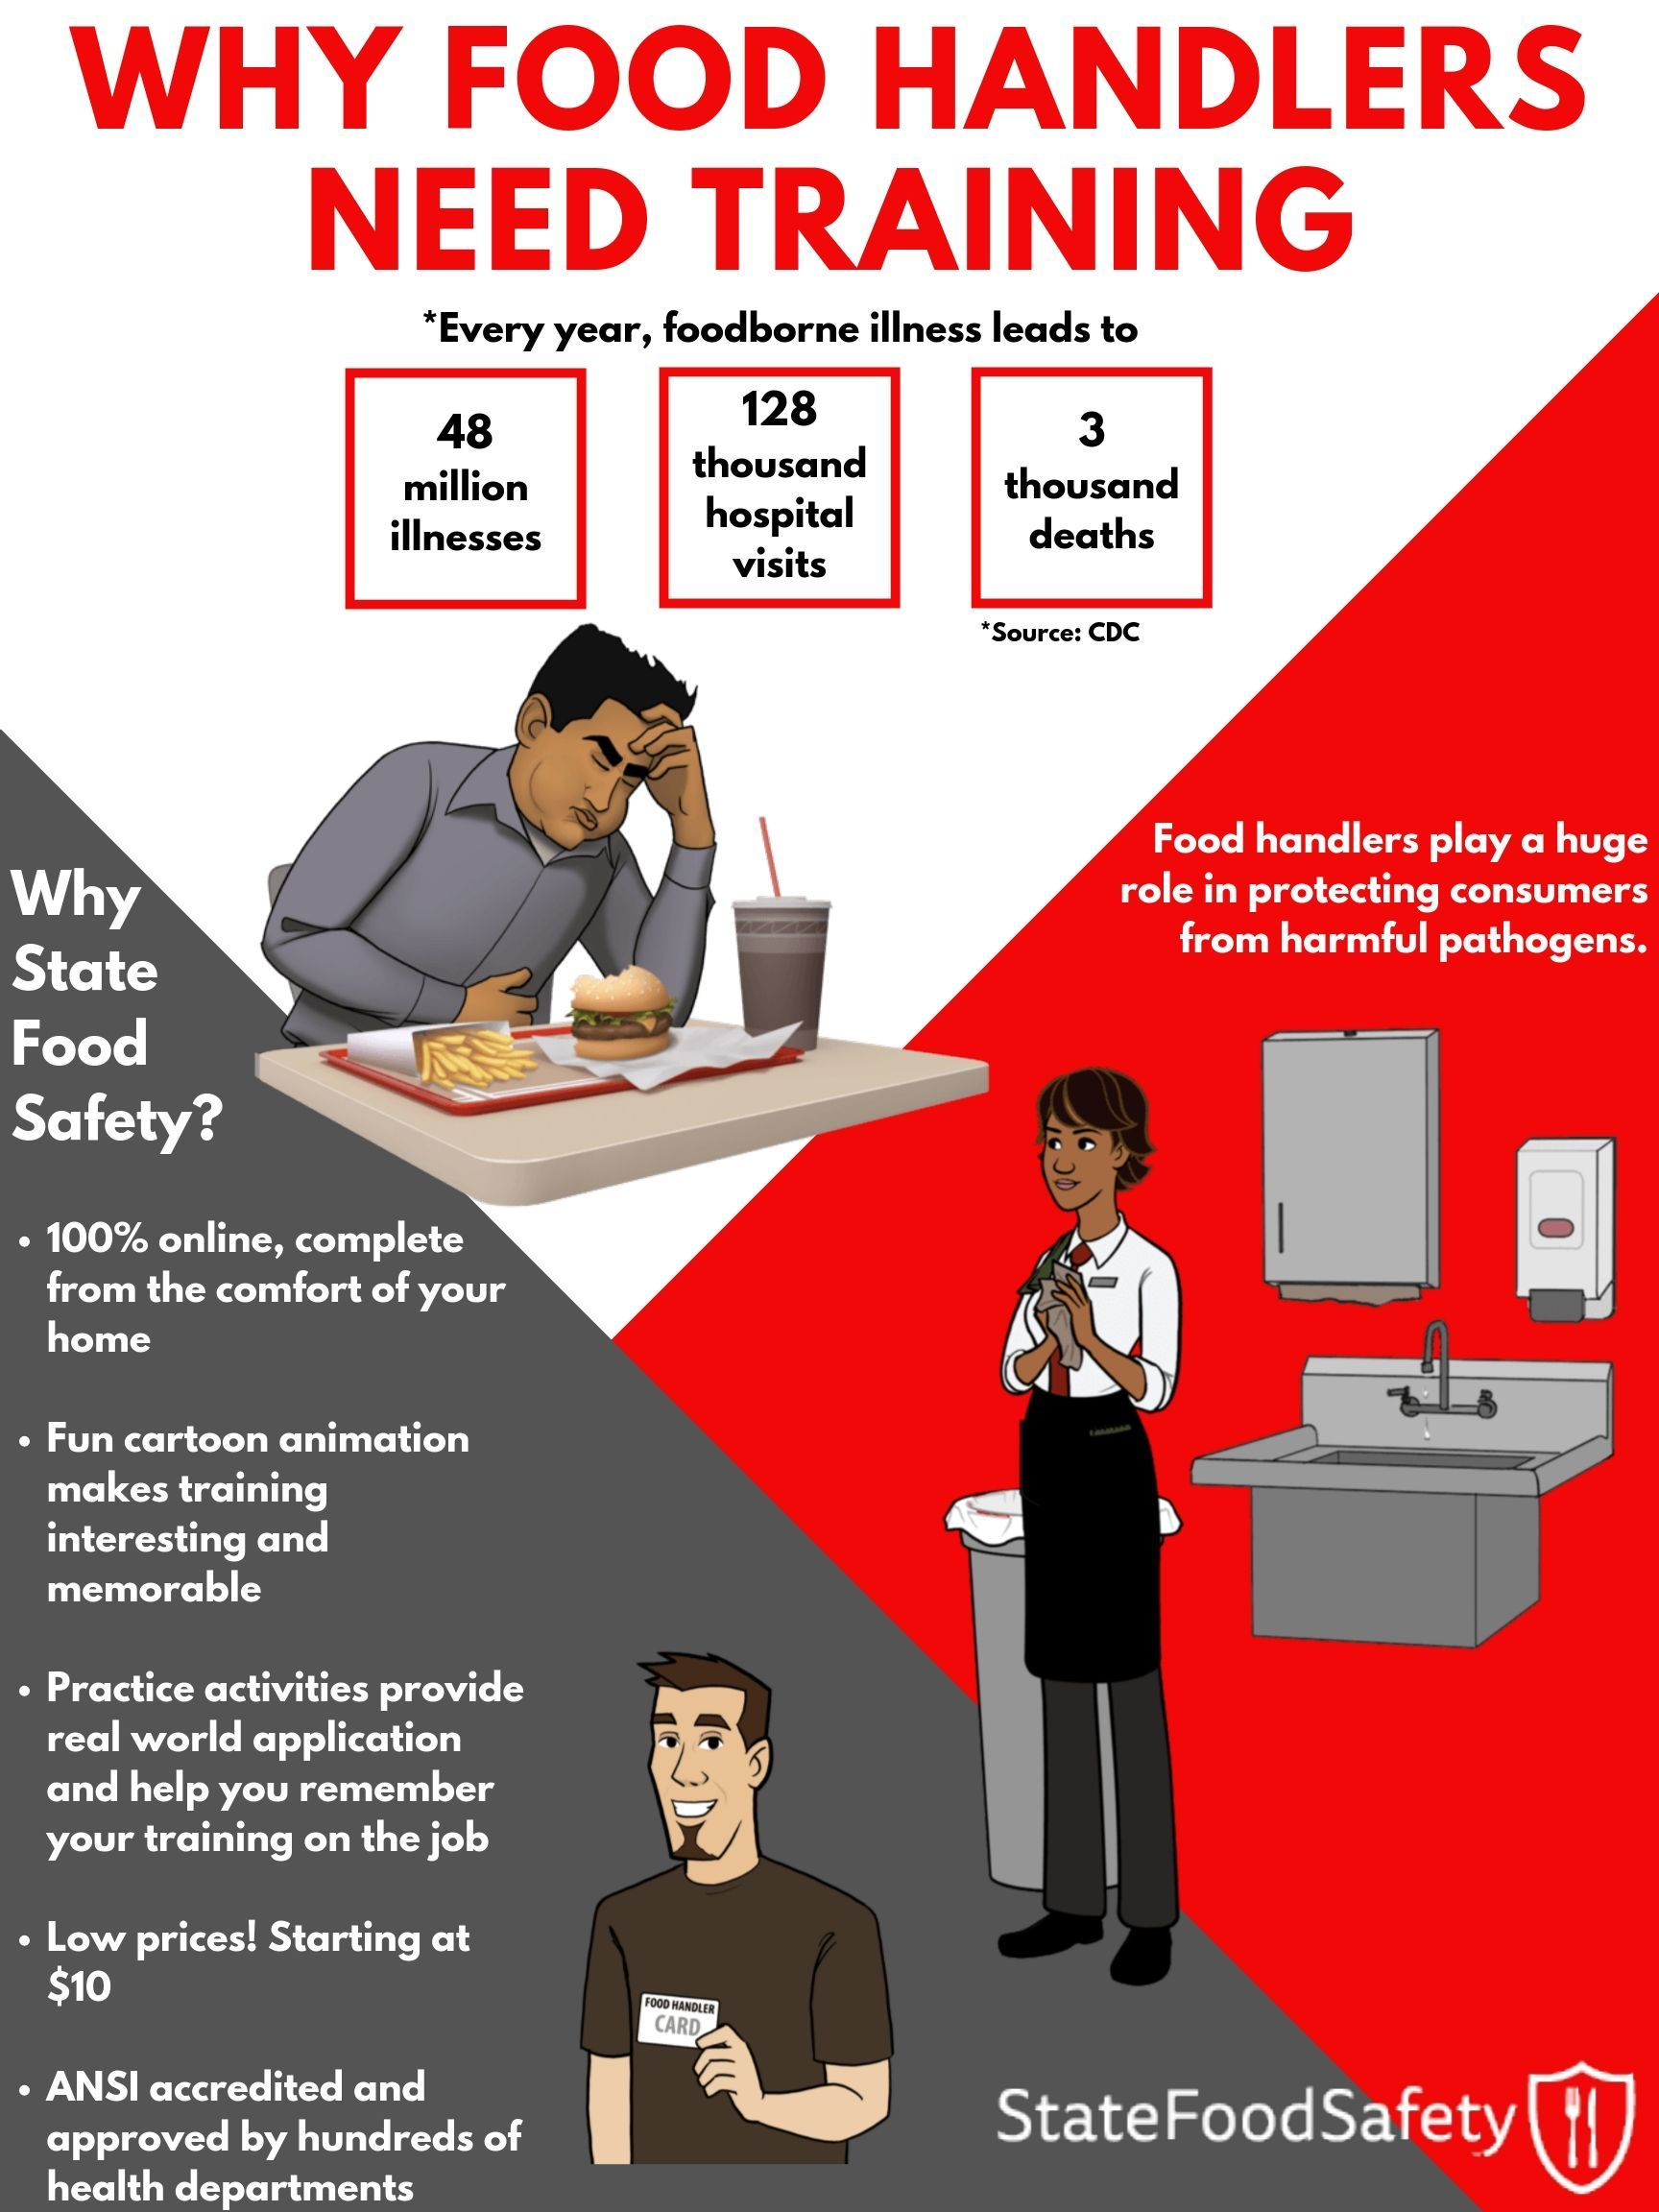 Learn how food handler training can benefit you and your